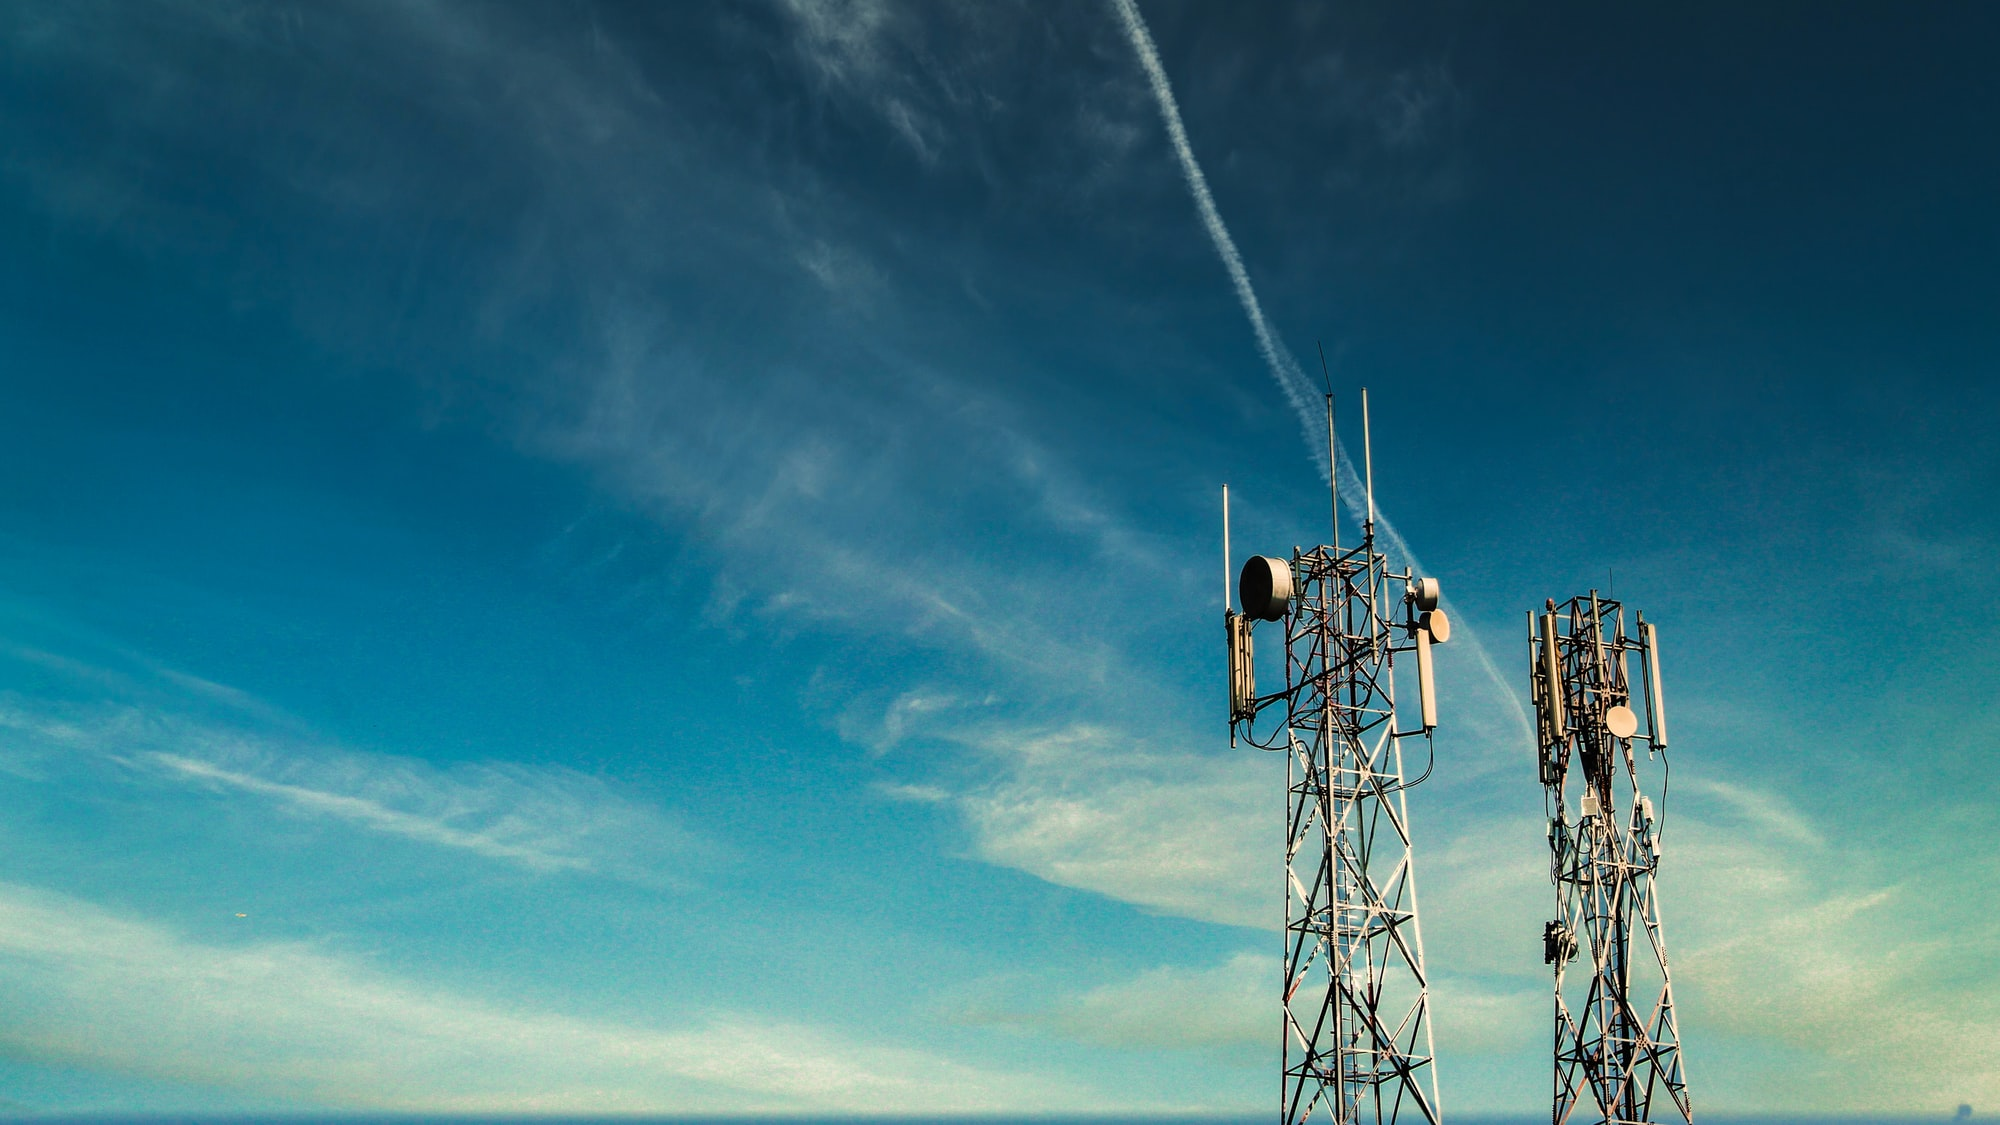 FCC to Take Up Network Resiliency, Spectrum Matters, and Robocalls in Open Meeting